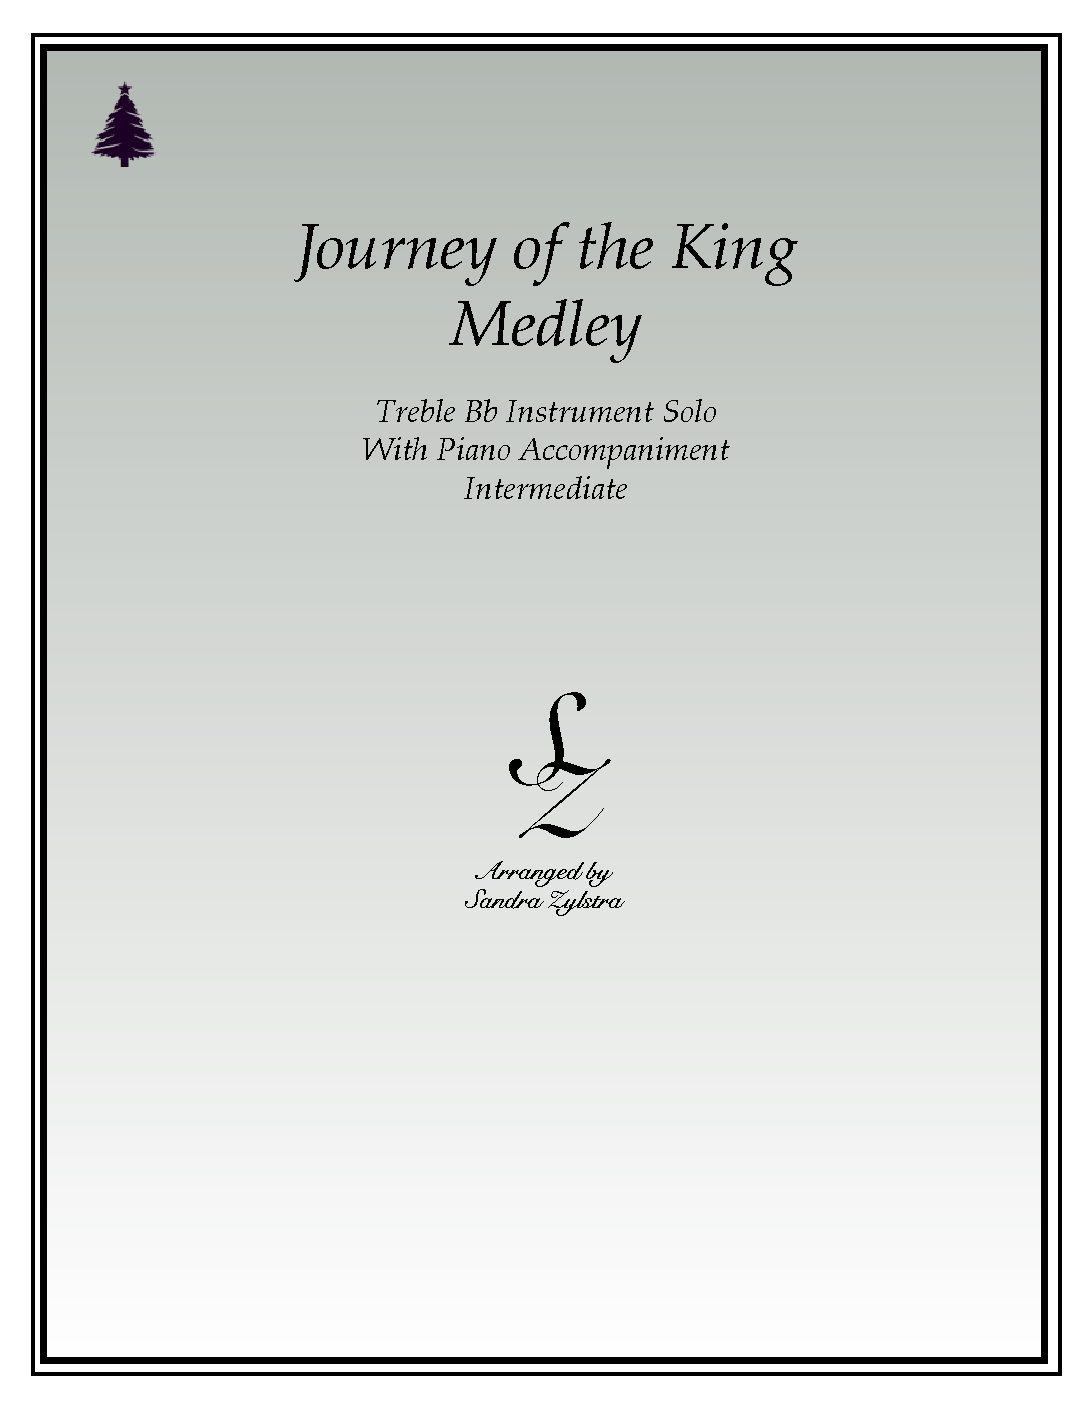 Journey Of The King Medley -Treble Bb Instrument Solo